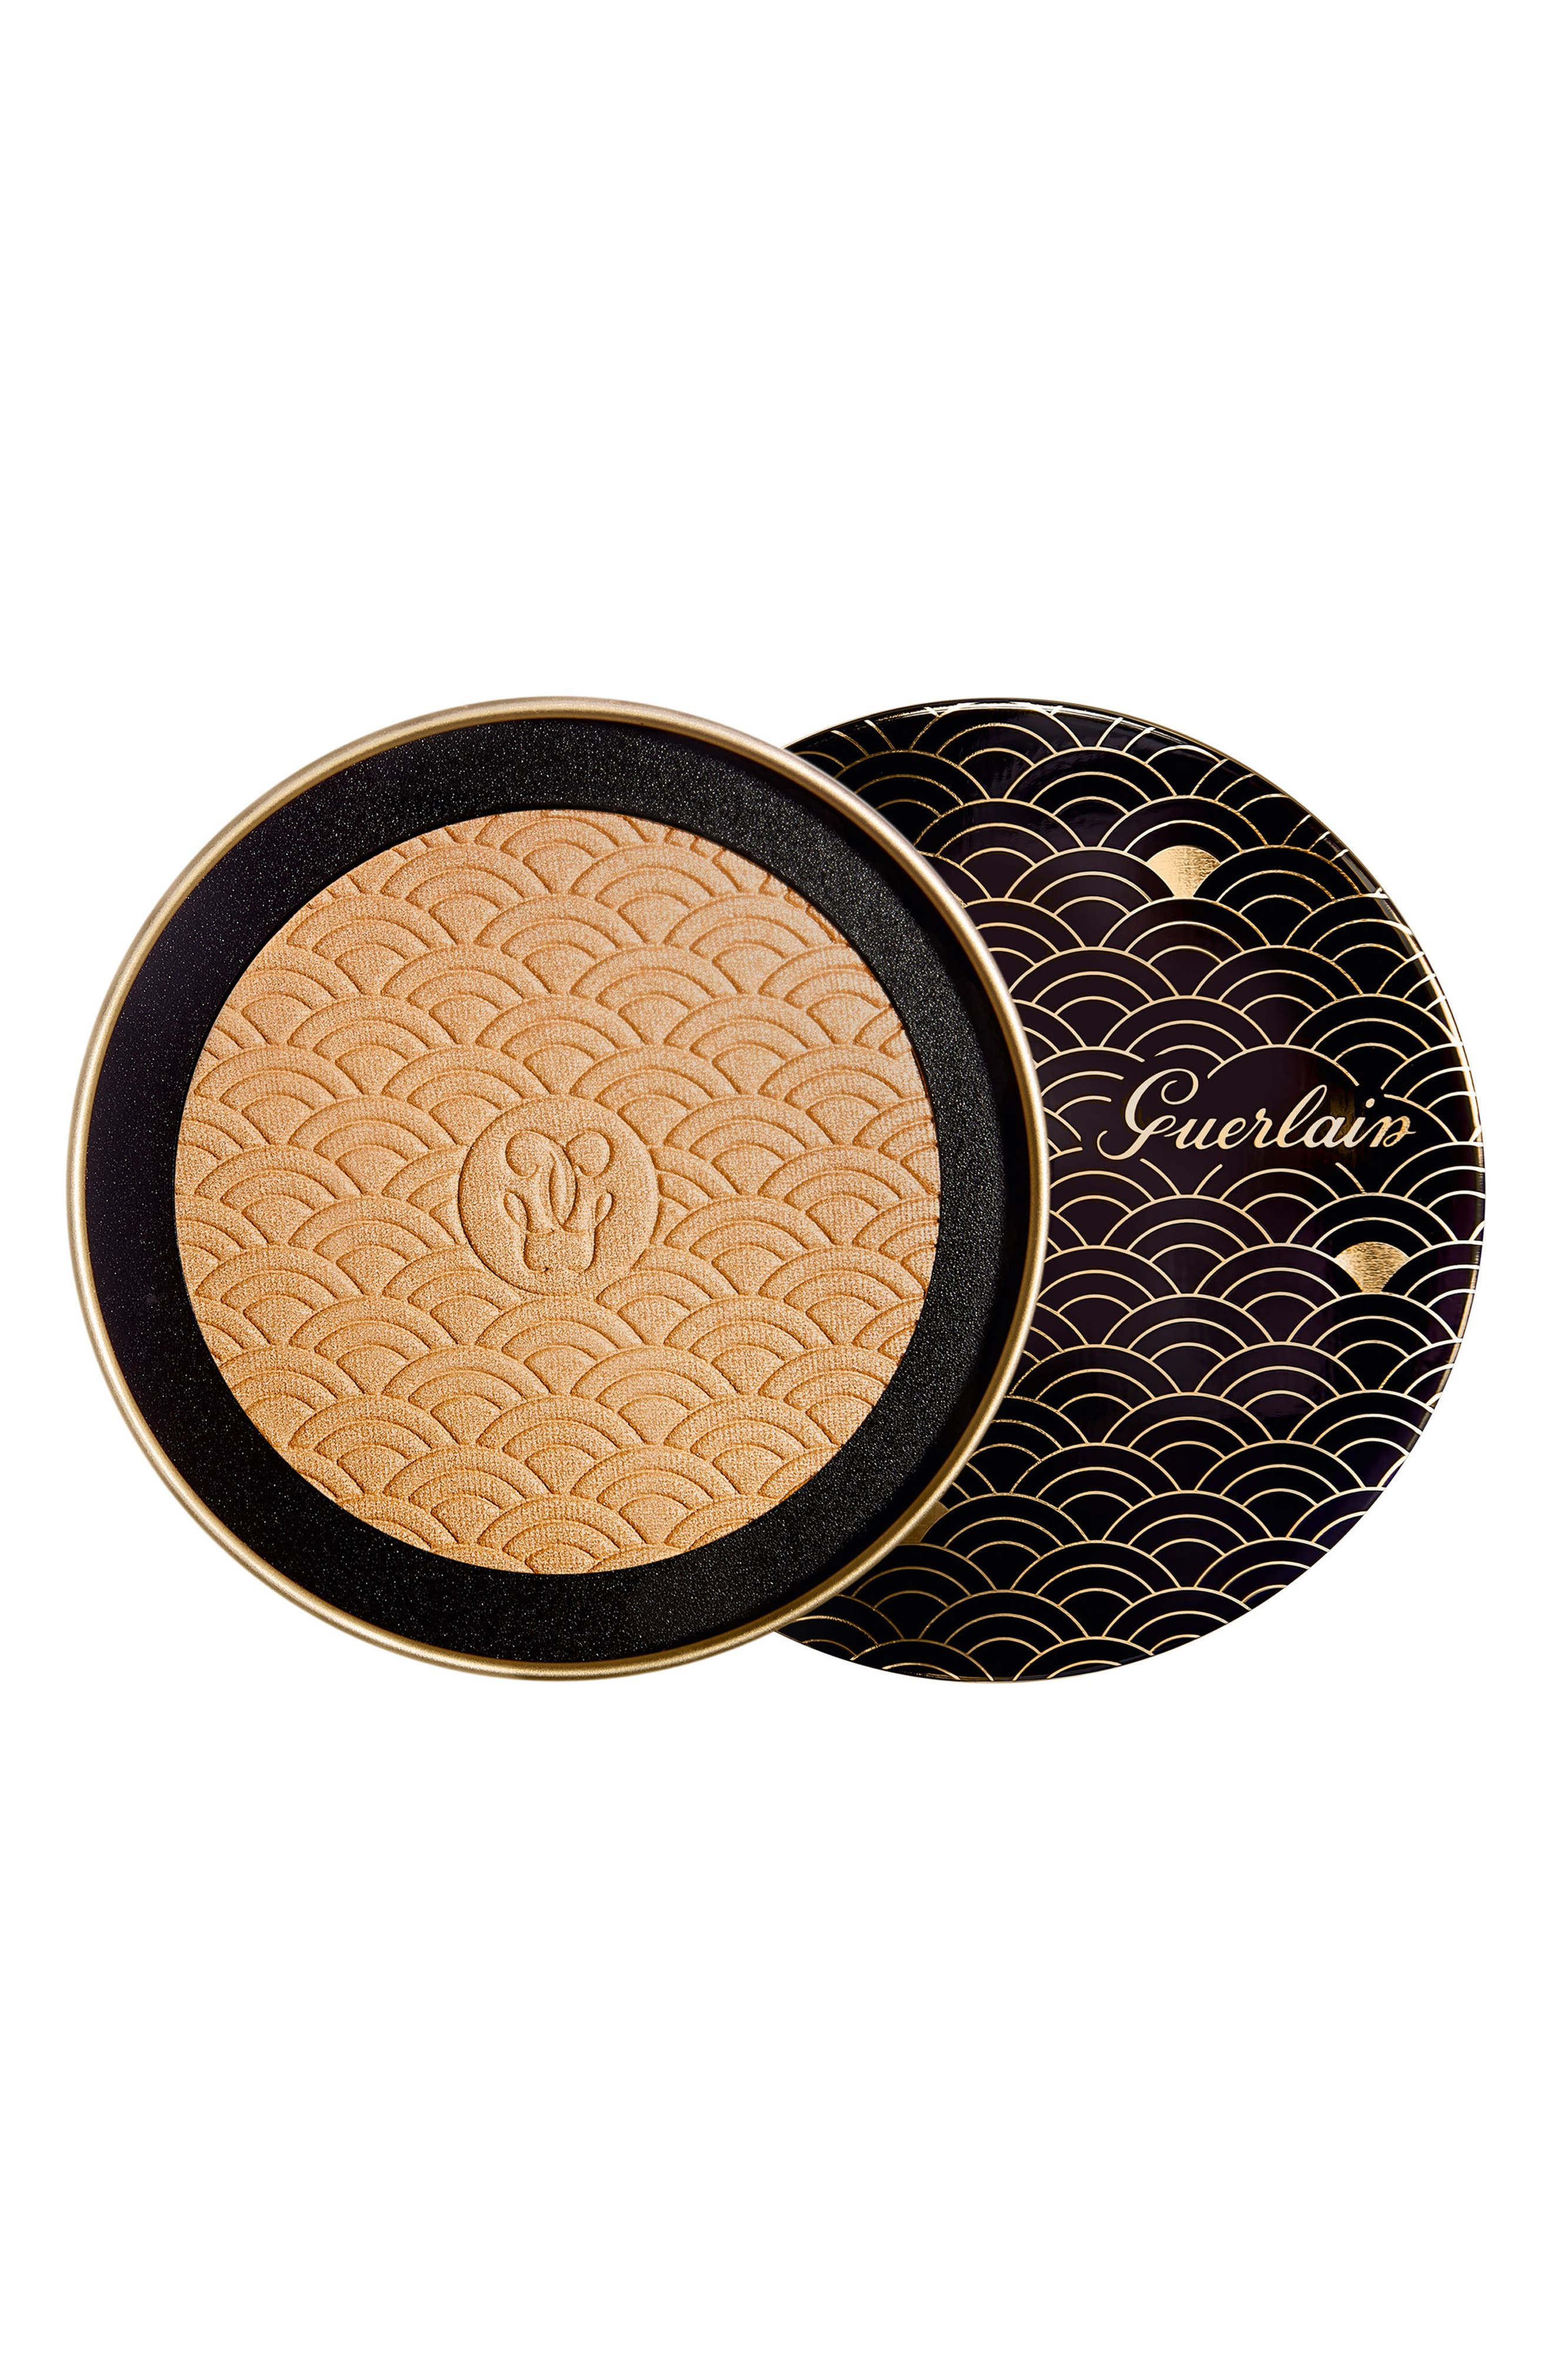 Guerlain Terracotta Gold Light (Limited Edition)